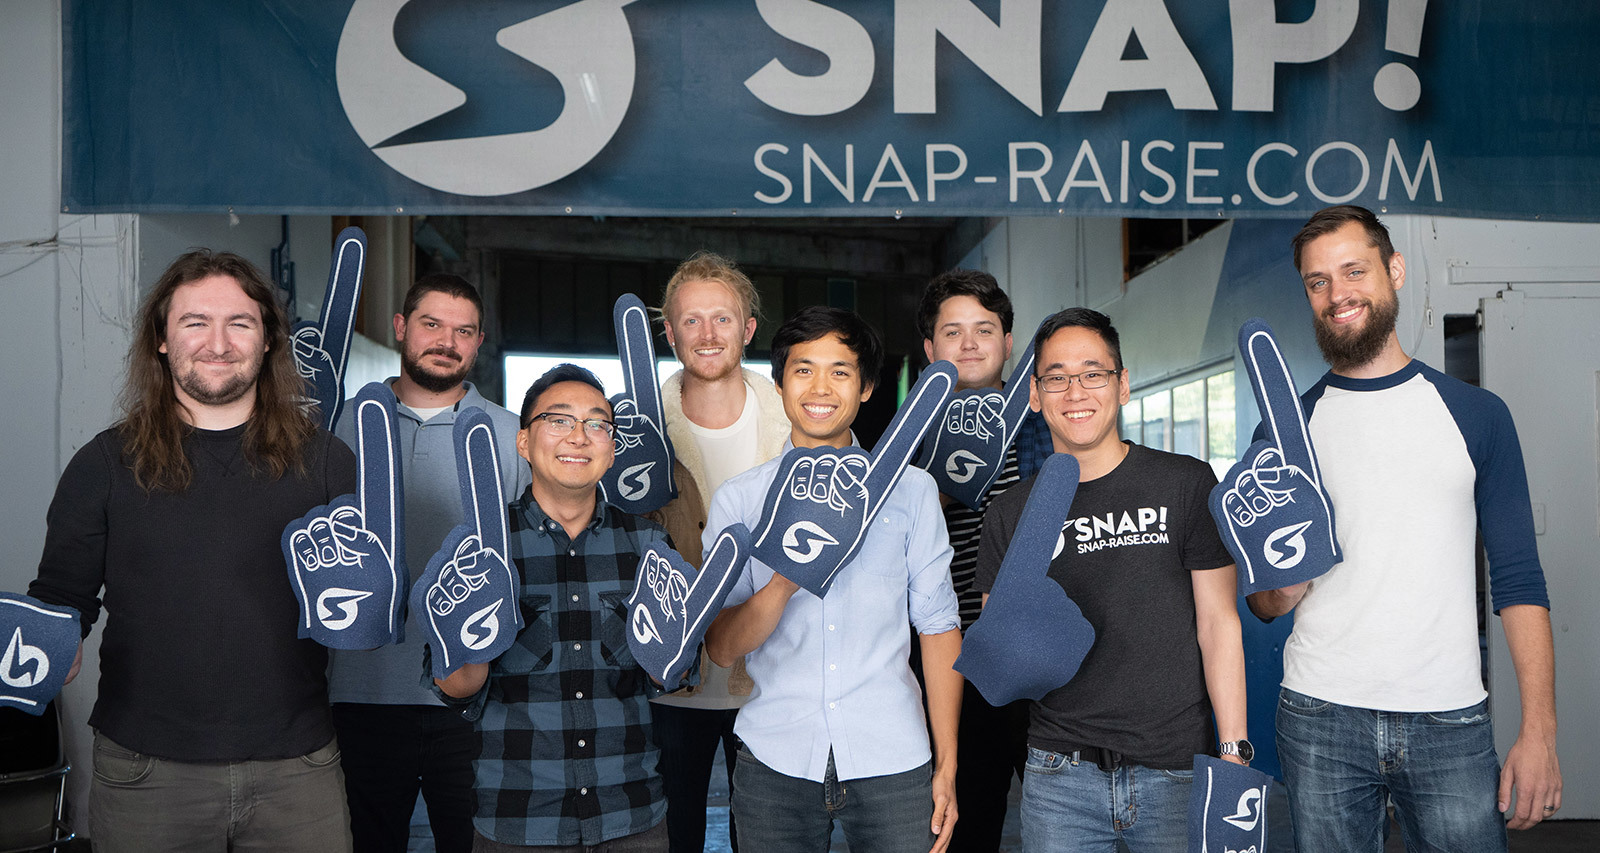 A group of smiling Snap! Raise employees wear and wave spirt gear.